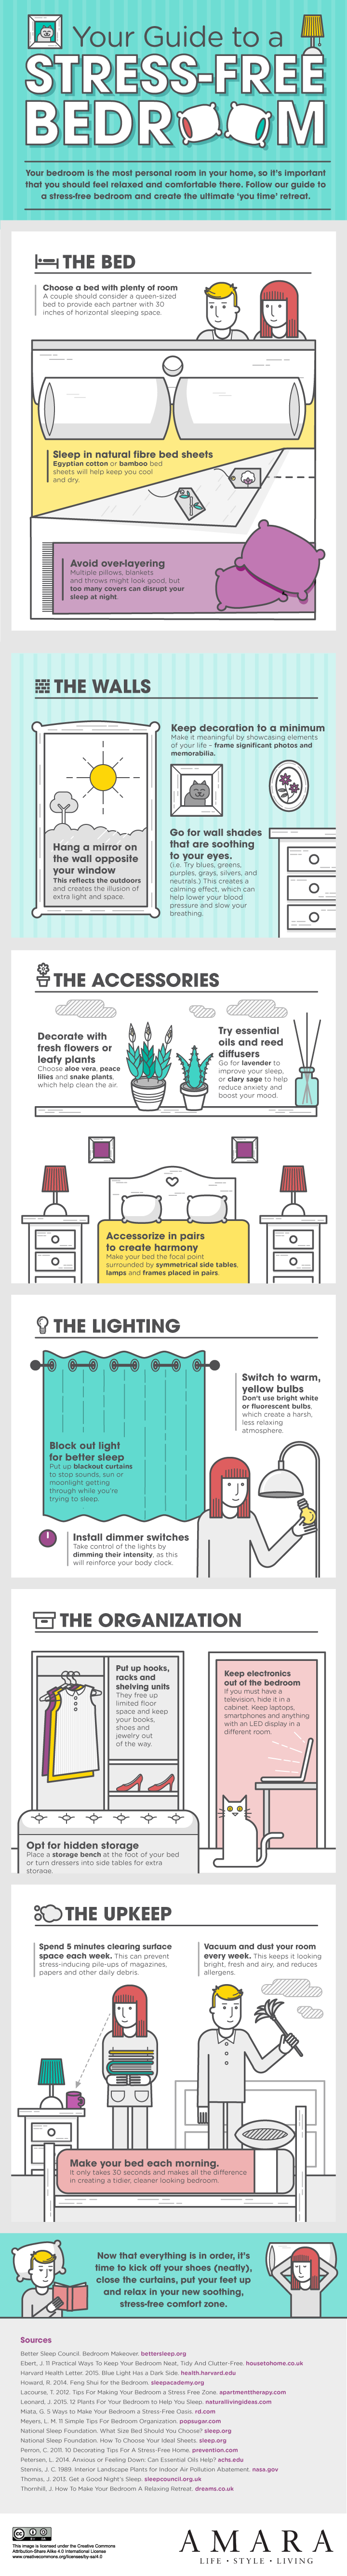 Your Guide to a Stress-free Bedroom